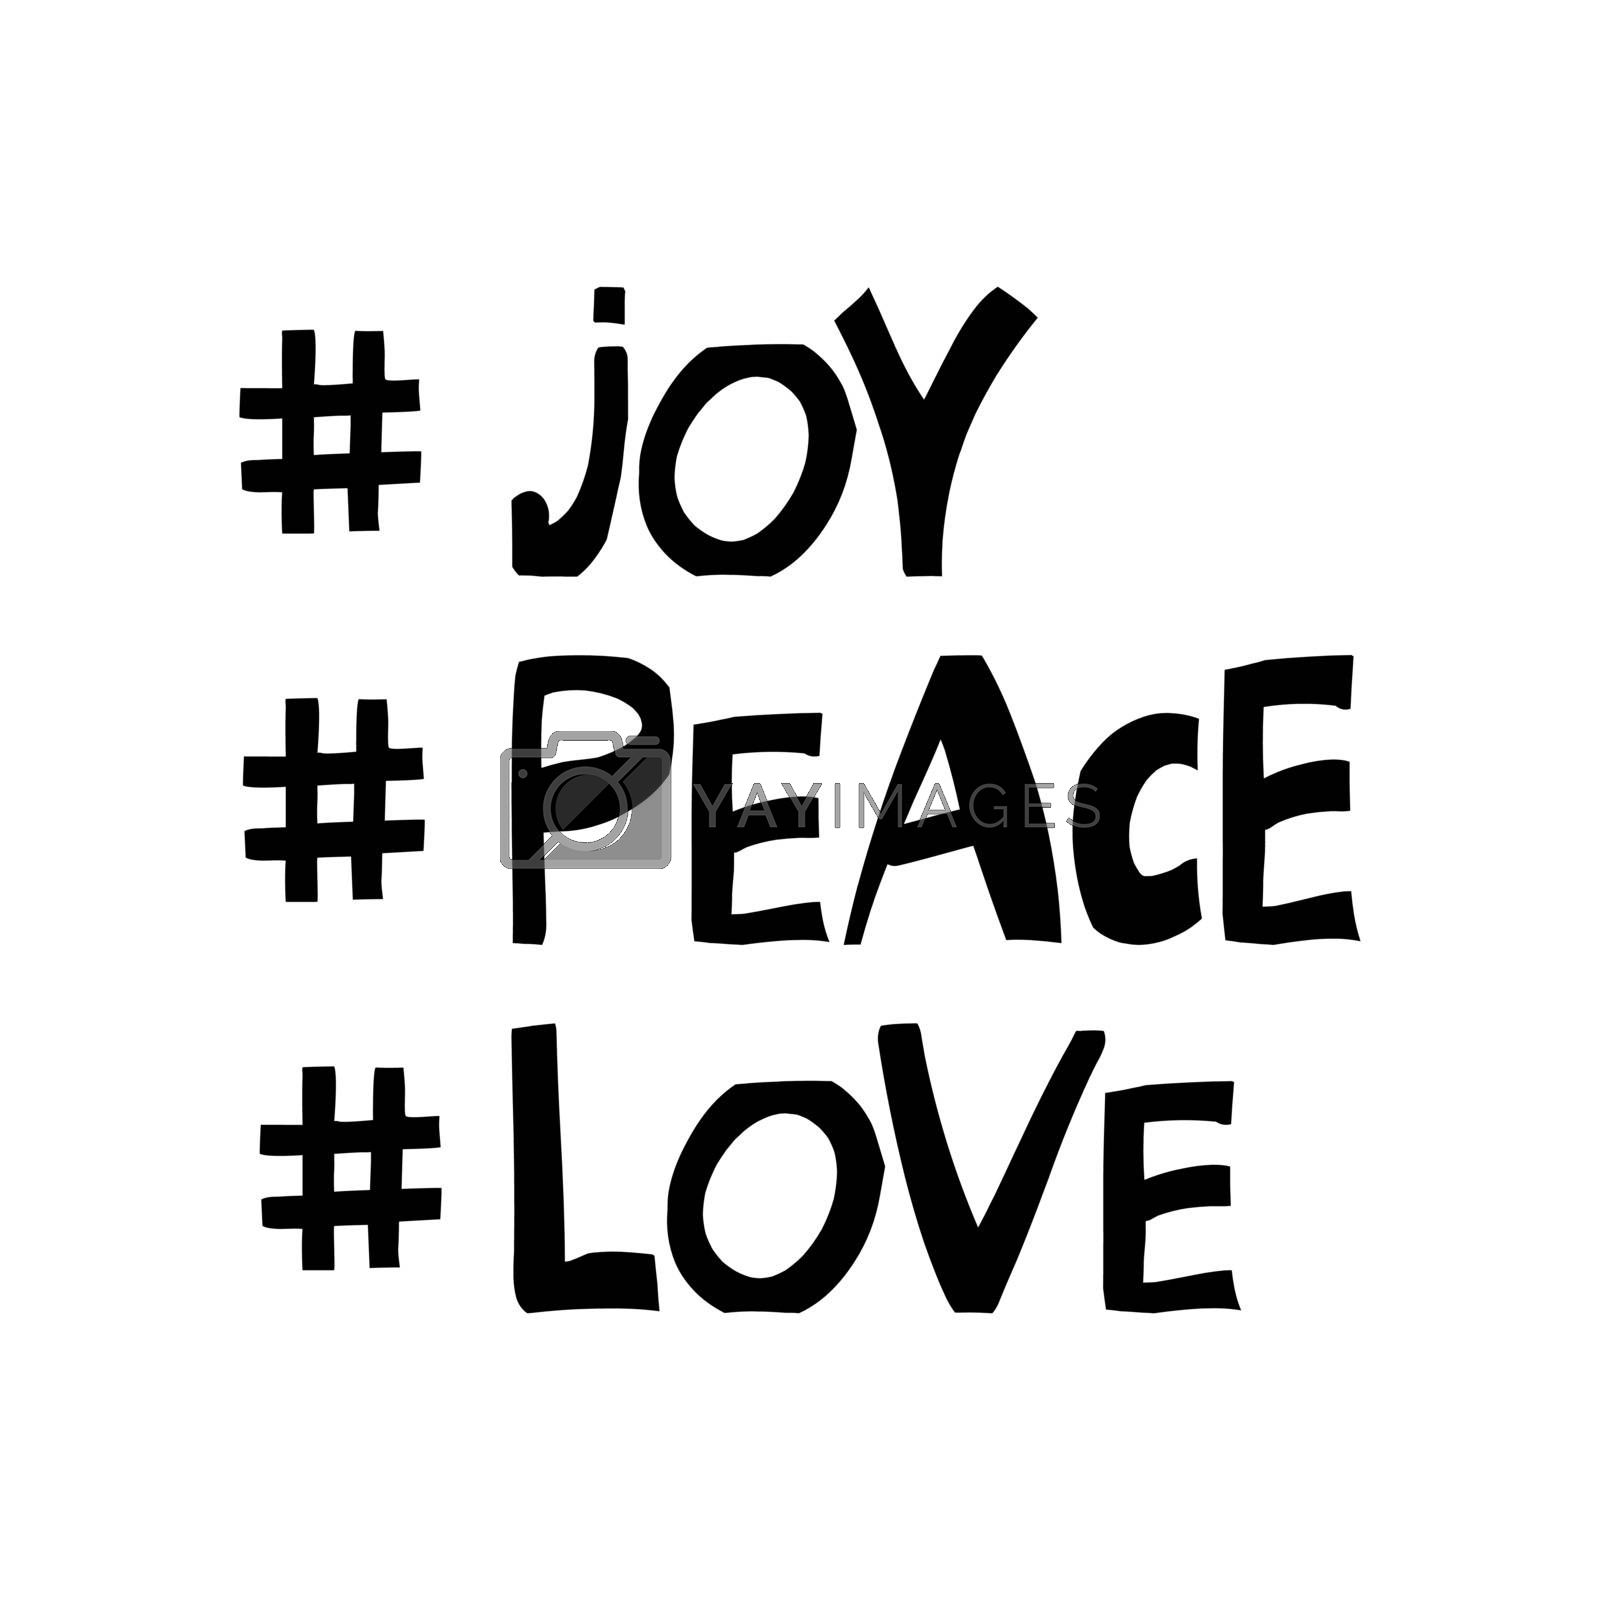 Joy, peace, love. Motivation quote. Cute hand drawn lettering in modern scandinavian style. Isolated on white. Vector stock illustration.